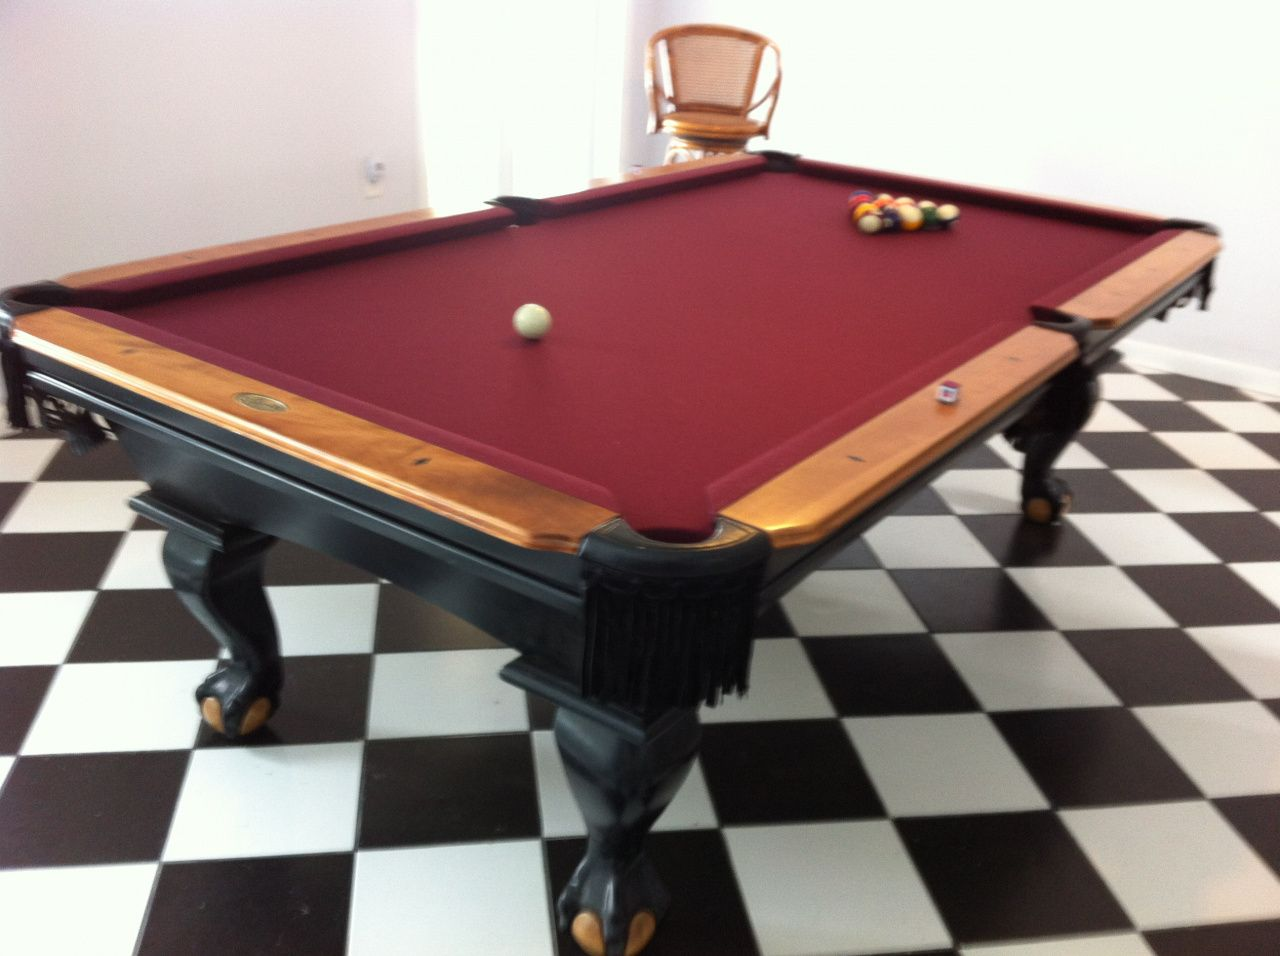 Pool Tables For Sale Craigslist Custom Home Office Furniture Check More At Http Ww American Heritage Pool Table Pool Table Accessories Pool Tables For Sale